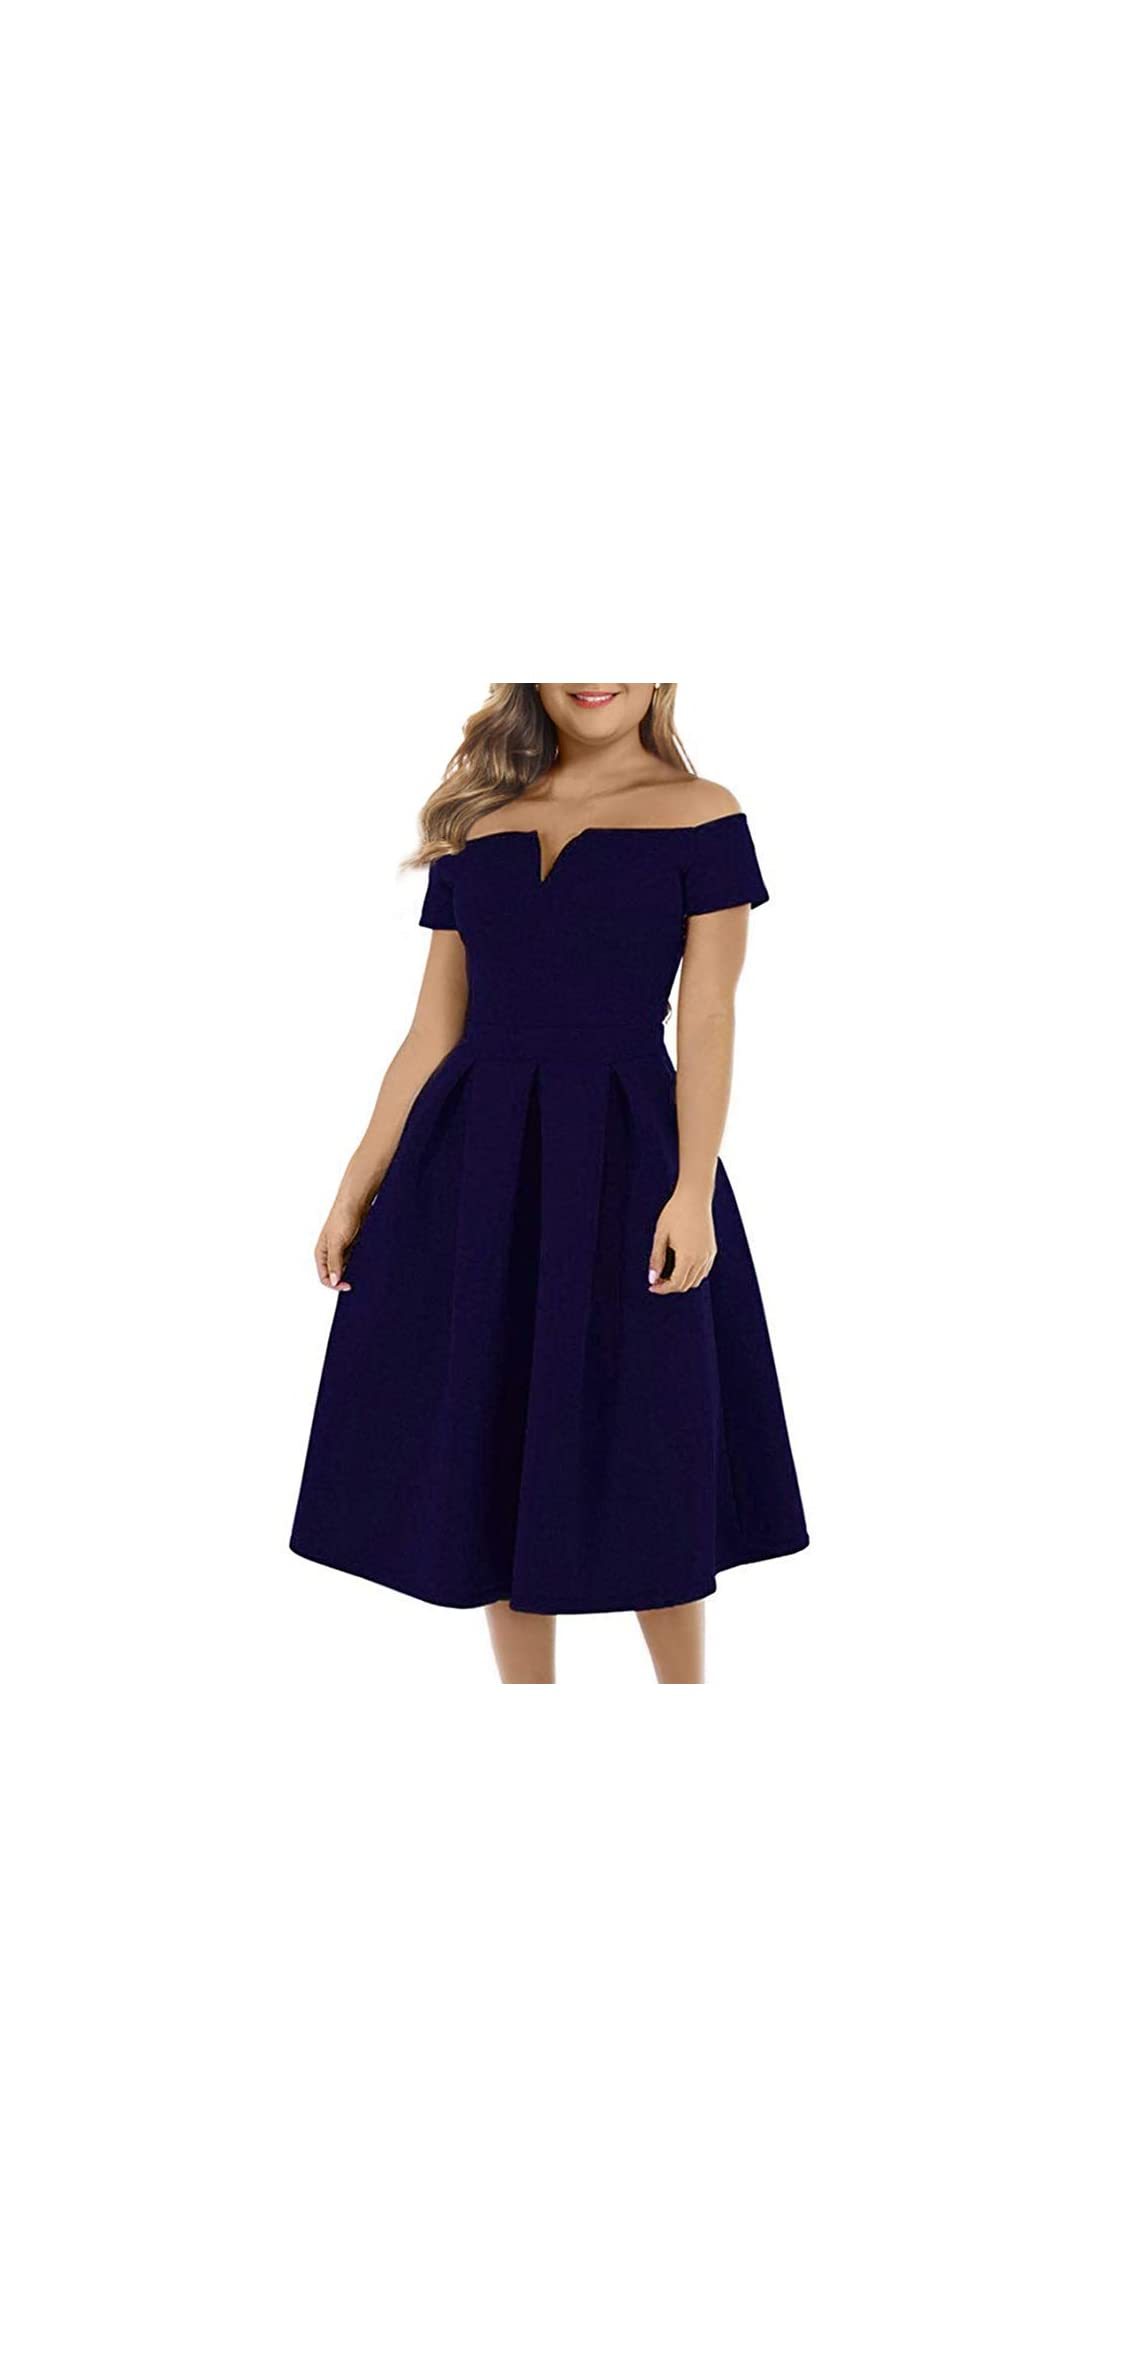 Women's Plus Size Vintage S Party Cocktail Wedding